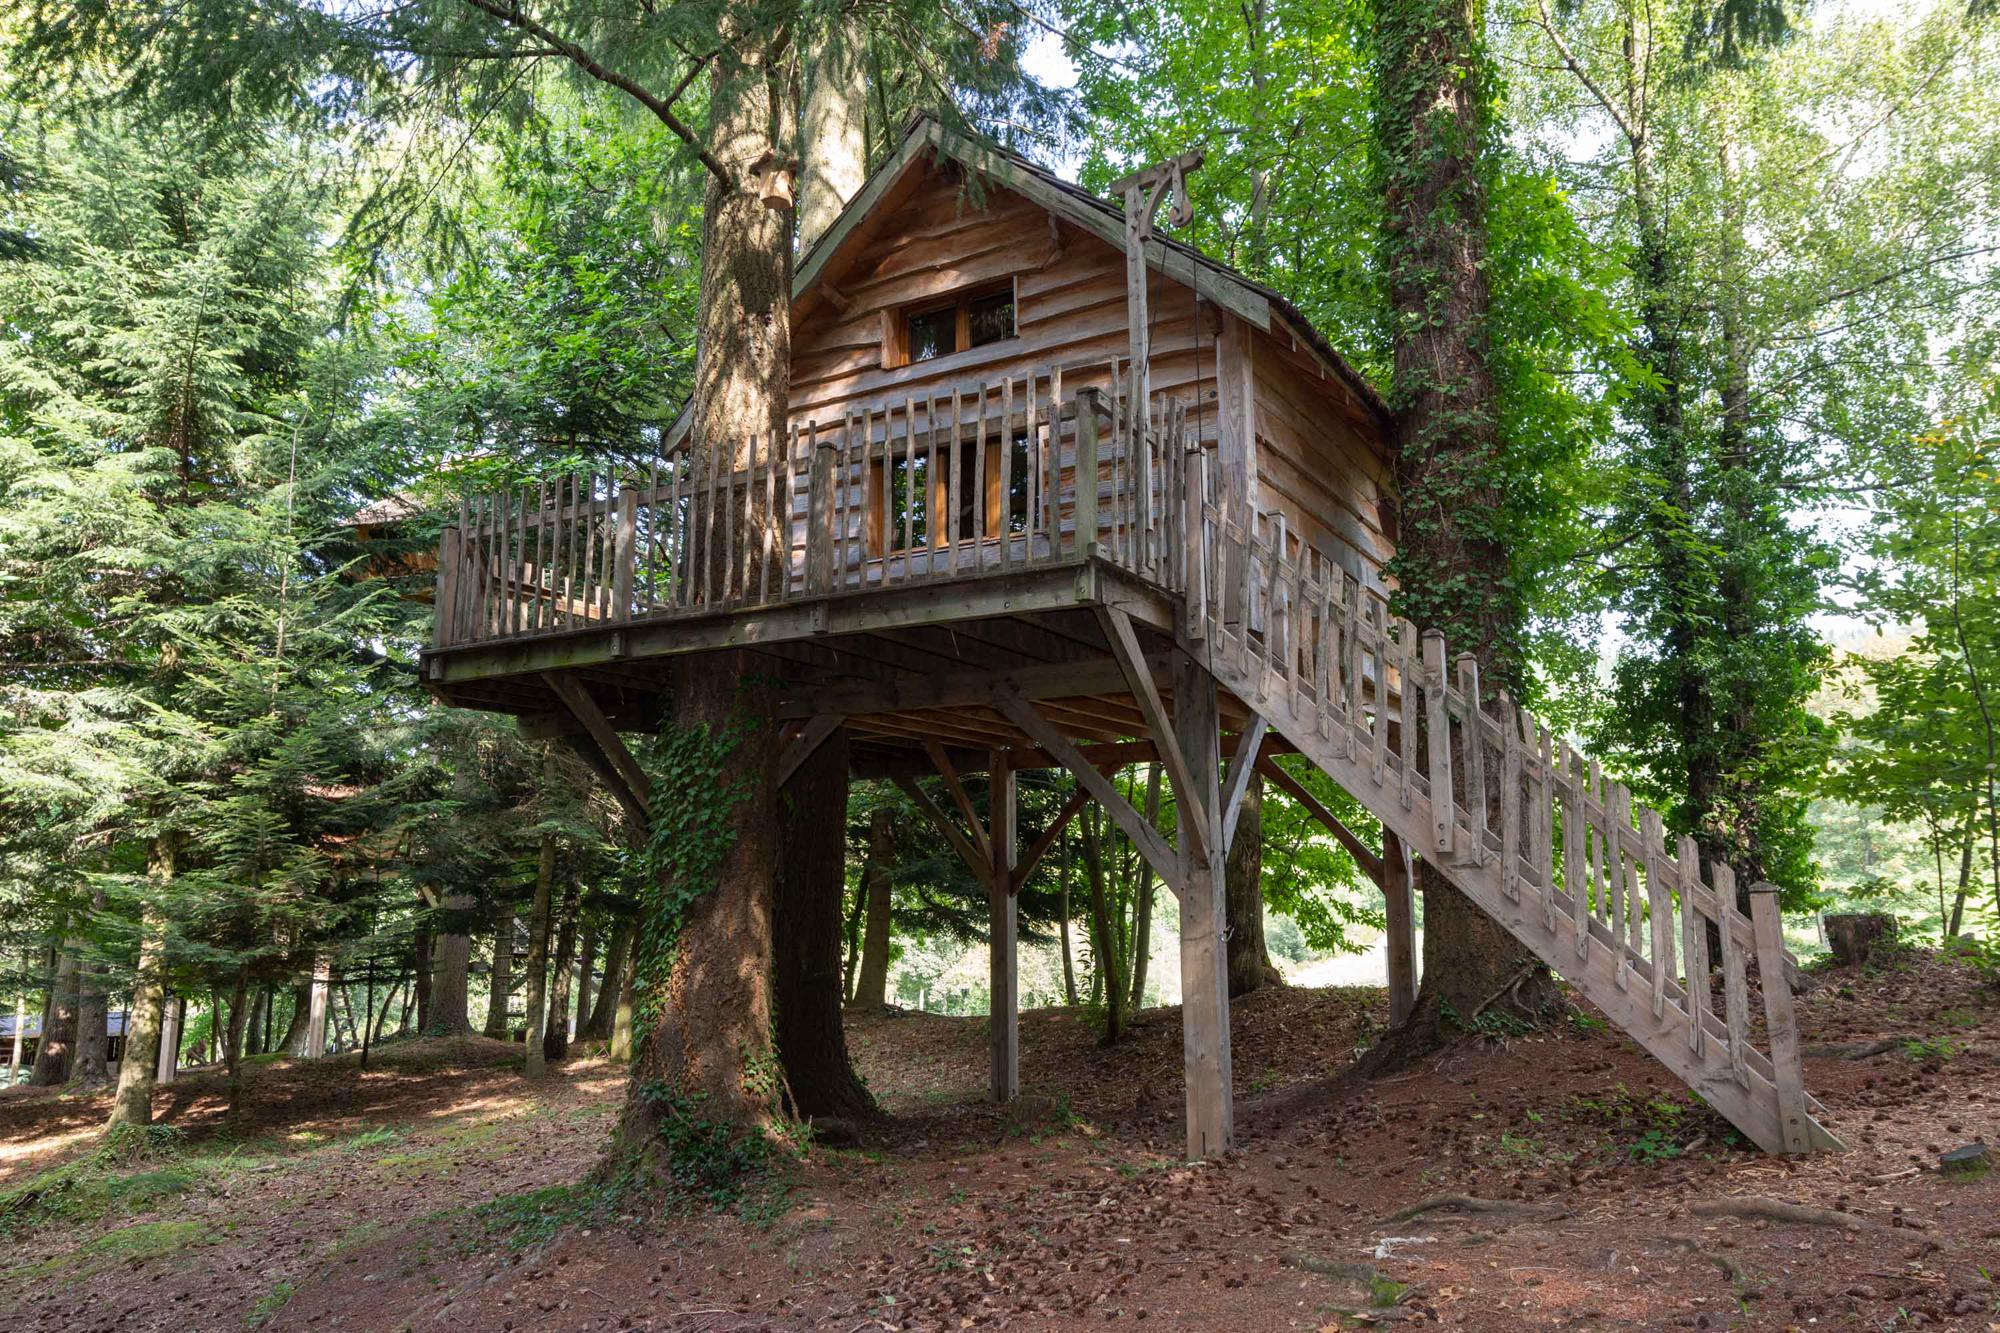 ours bear family tree house at les cabanes de labrousse cool camping